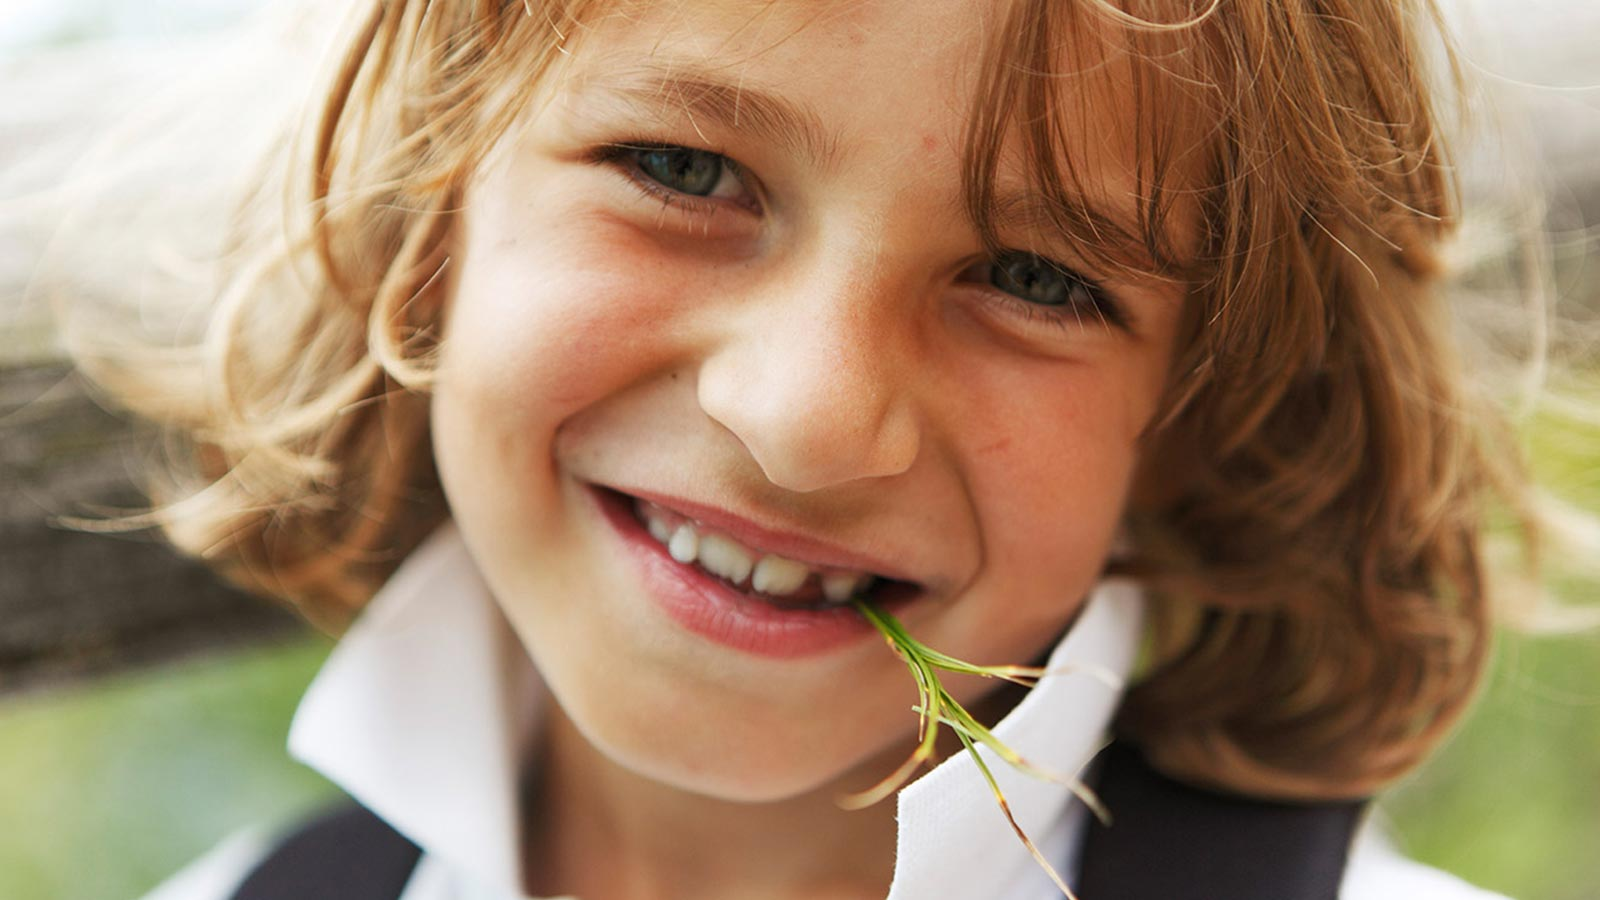 A child smiles with a sprig of rosemary in his mouth during a family holiday in South Tyrol